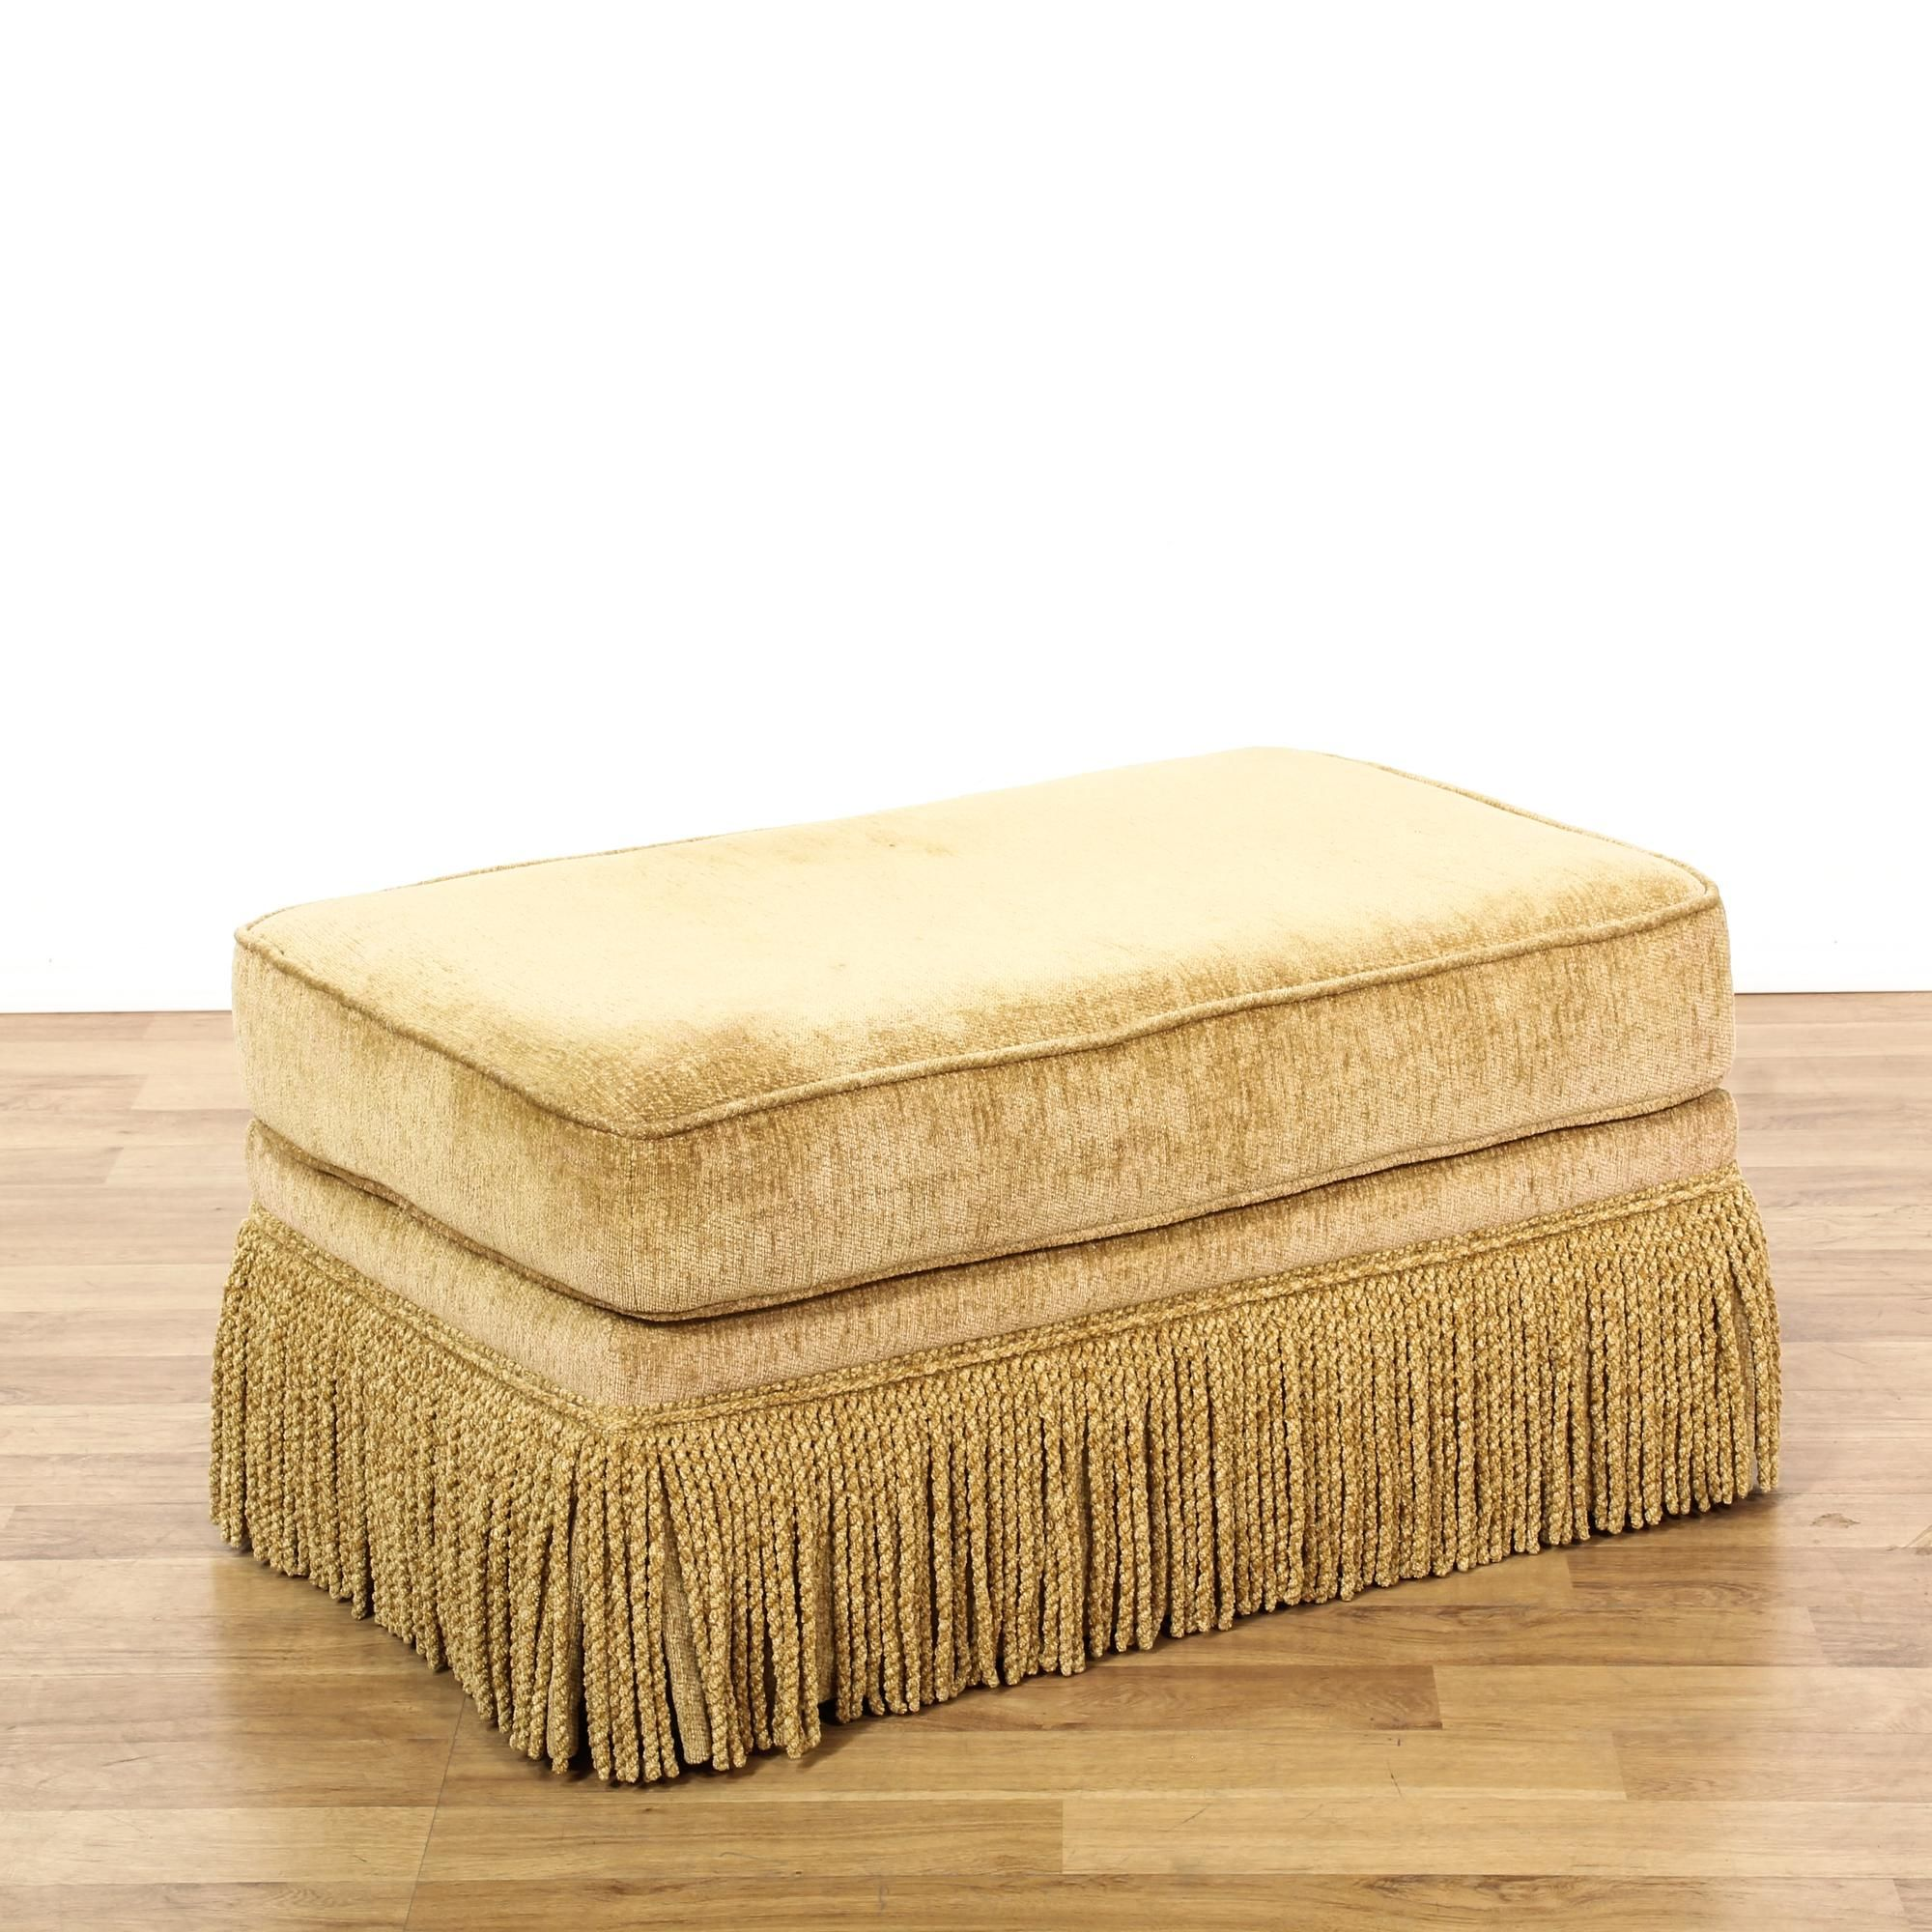 This ottoman is upholstered in a durable velvet with a light tan gold finish. This footstool has a large cushion top with piping trim and a long fringe skirt. Perfect bench for kicking your feet up! #americantraditional #chairs #ottoman #sandiegovintage #vintagefurniture